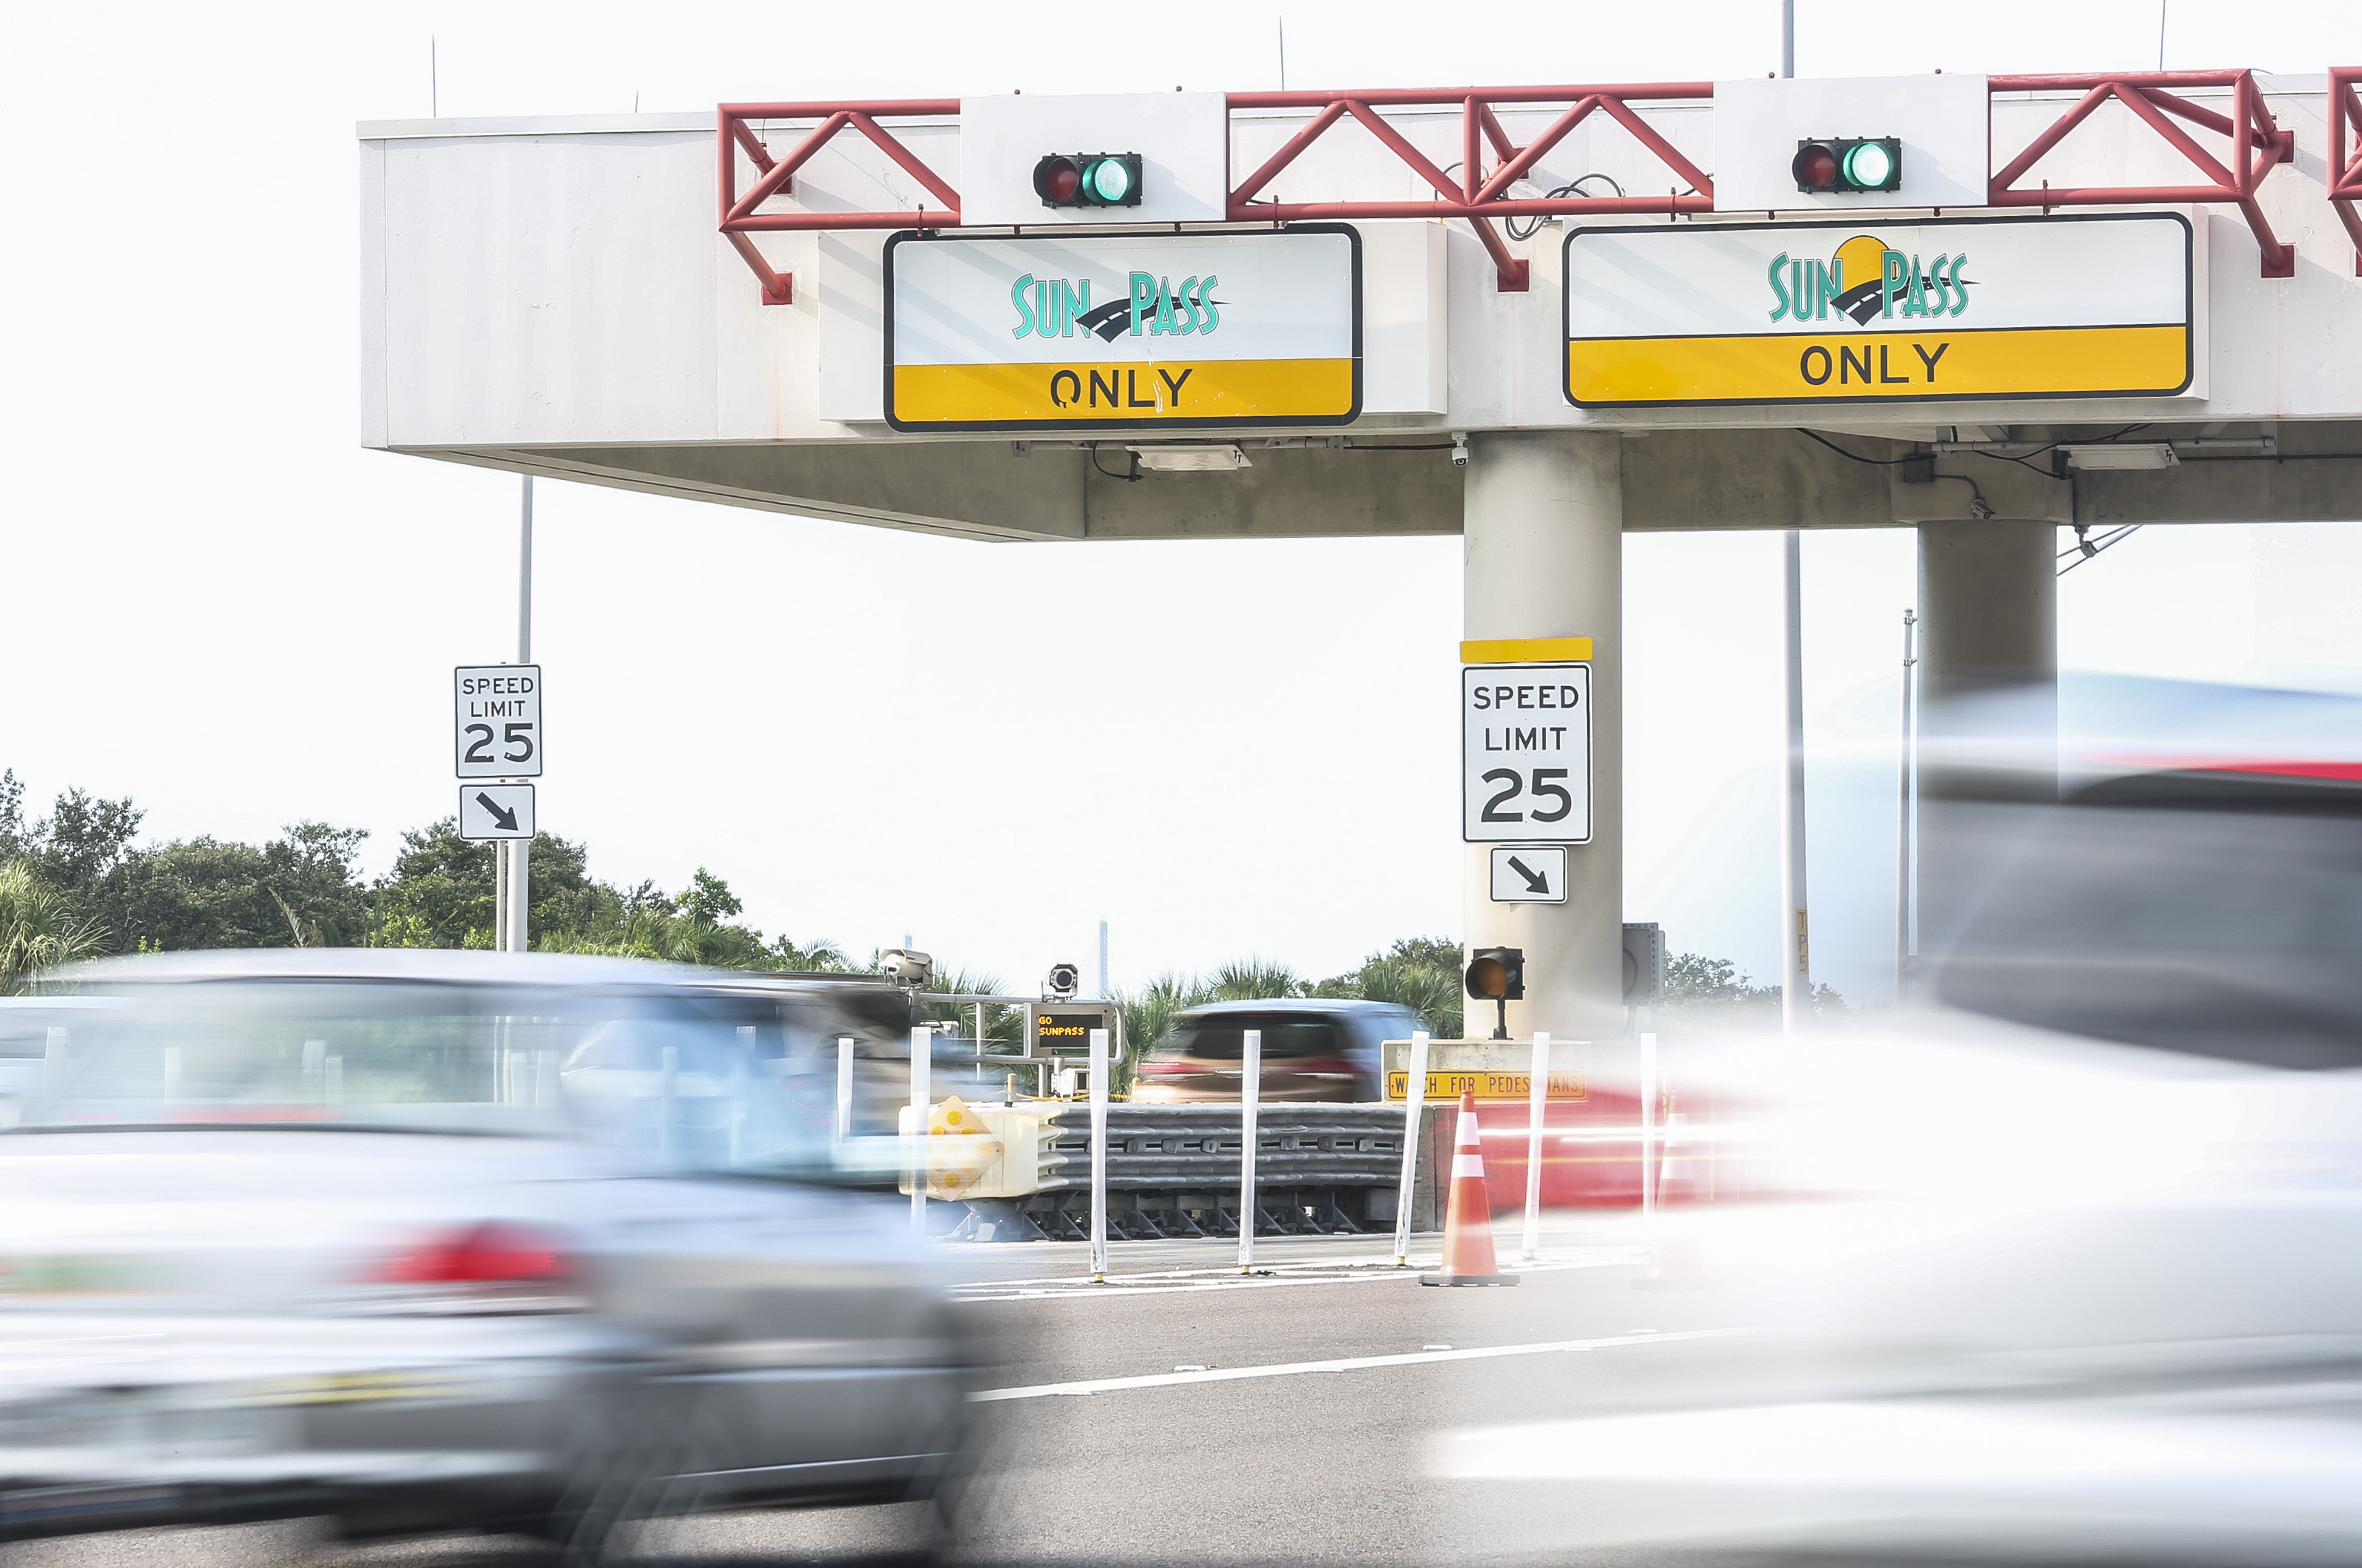 florida spent $3.6 million for a company to drop its sunpass